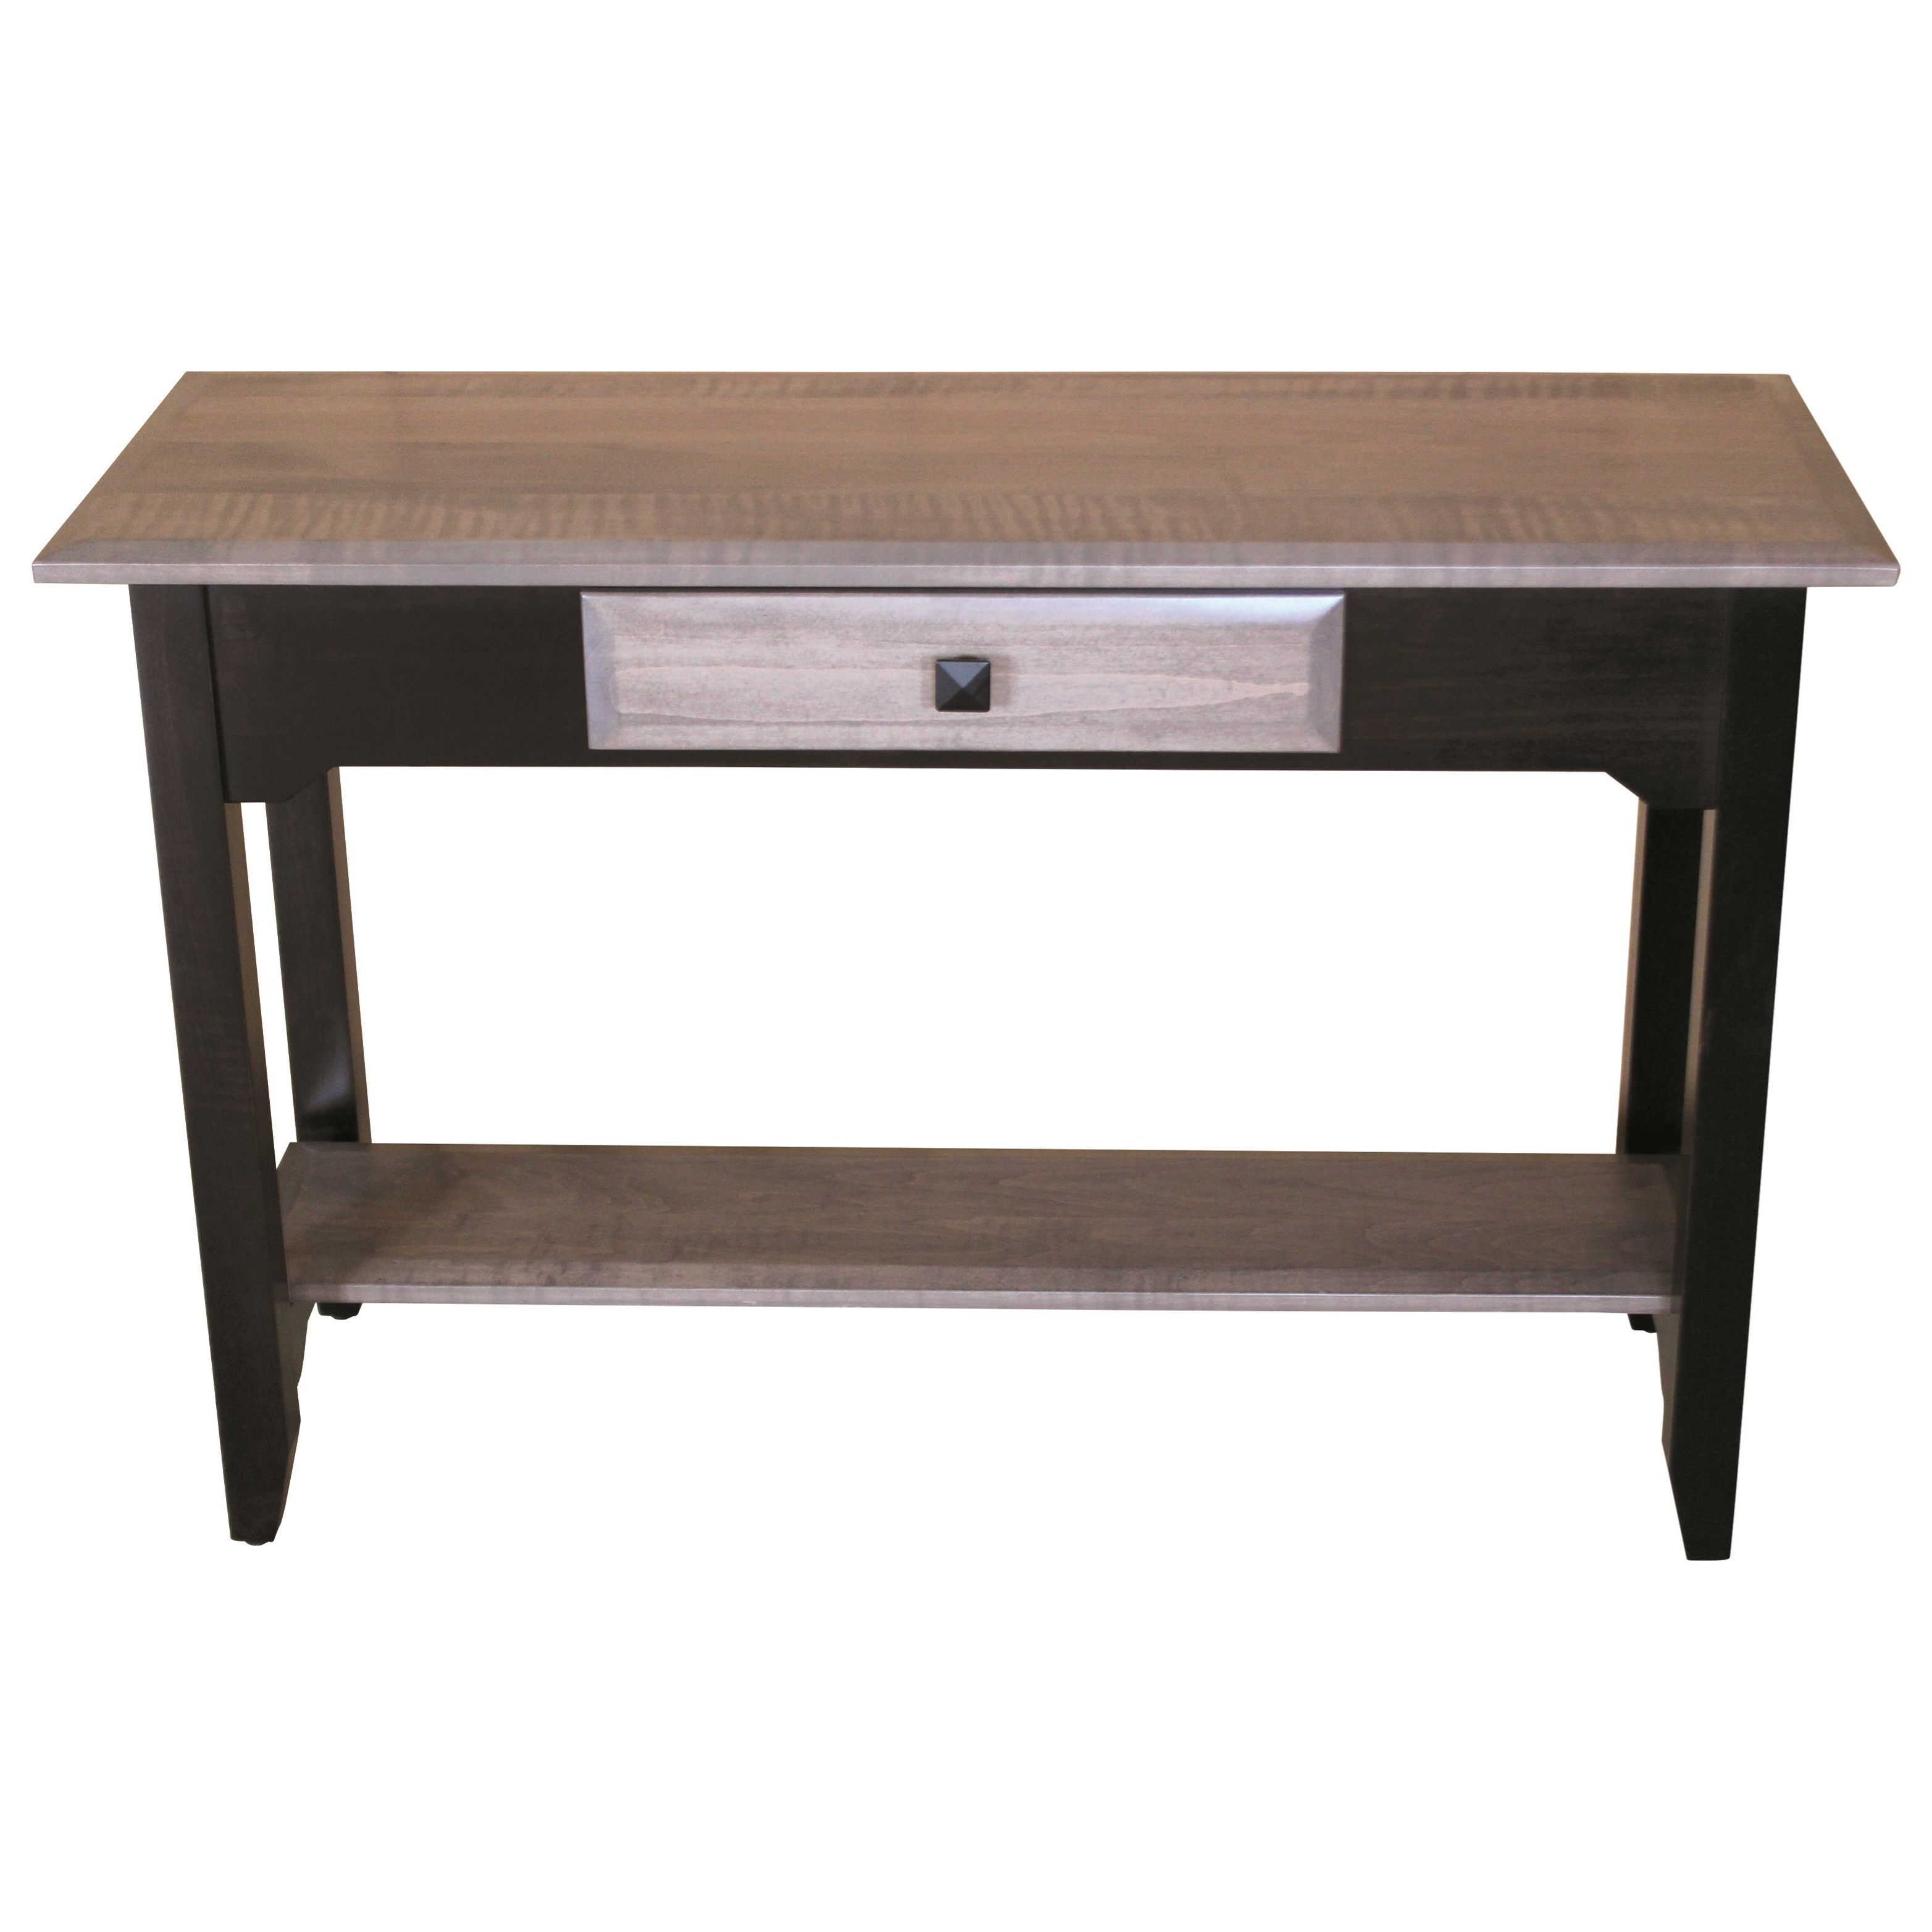 Iris Sofa Table by Ashery Woodworking at Saugerties Furniture Mart